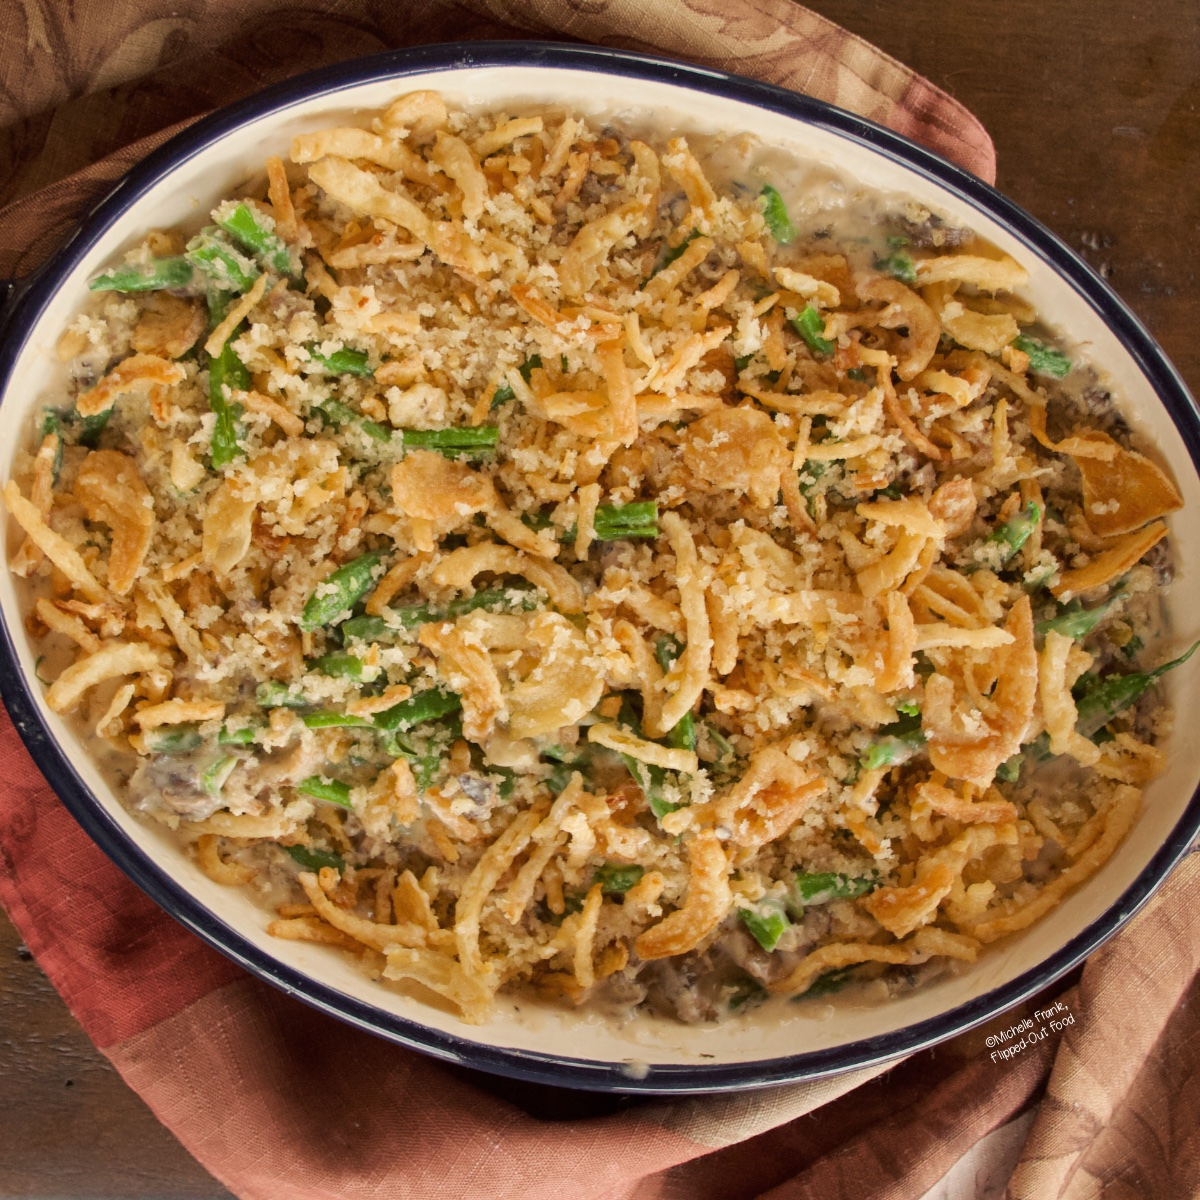 Make-ahead green bean casserole in baking dish